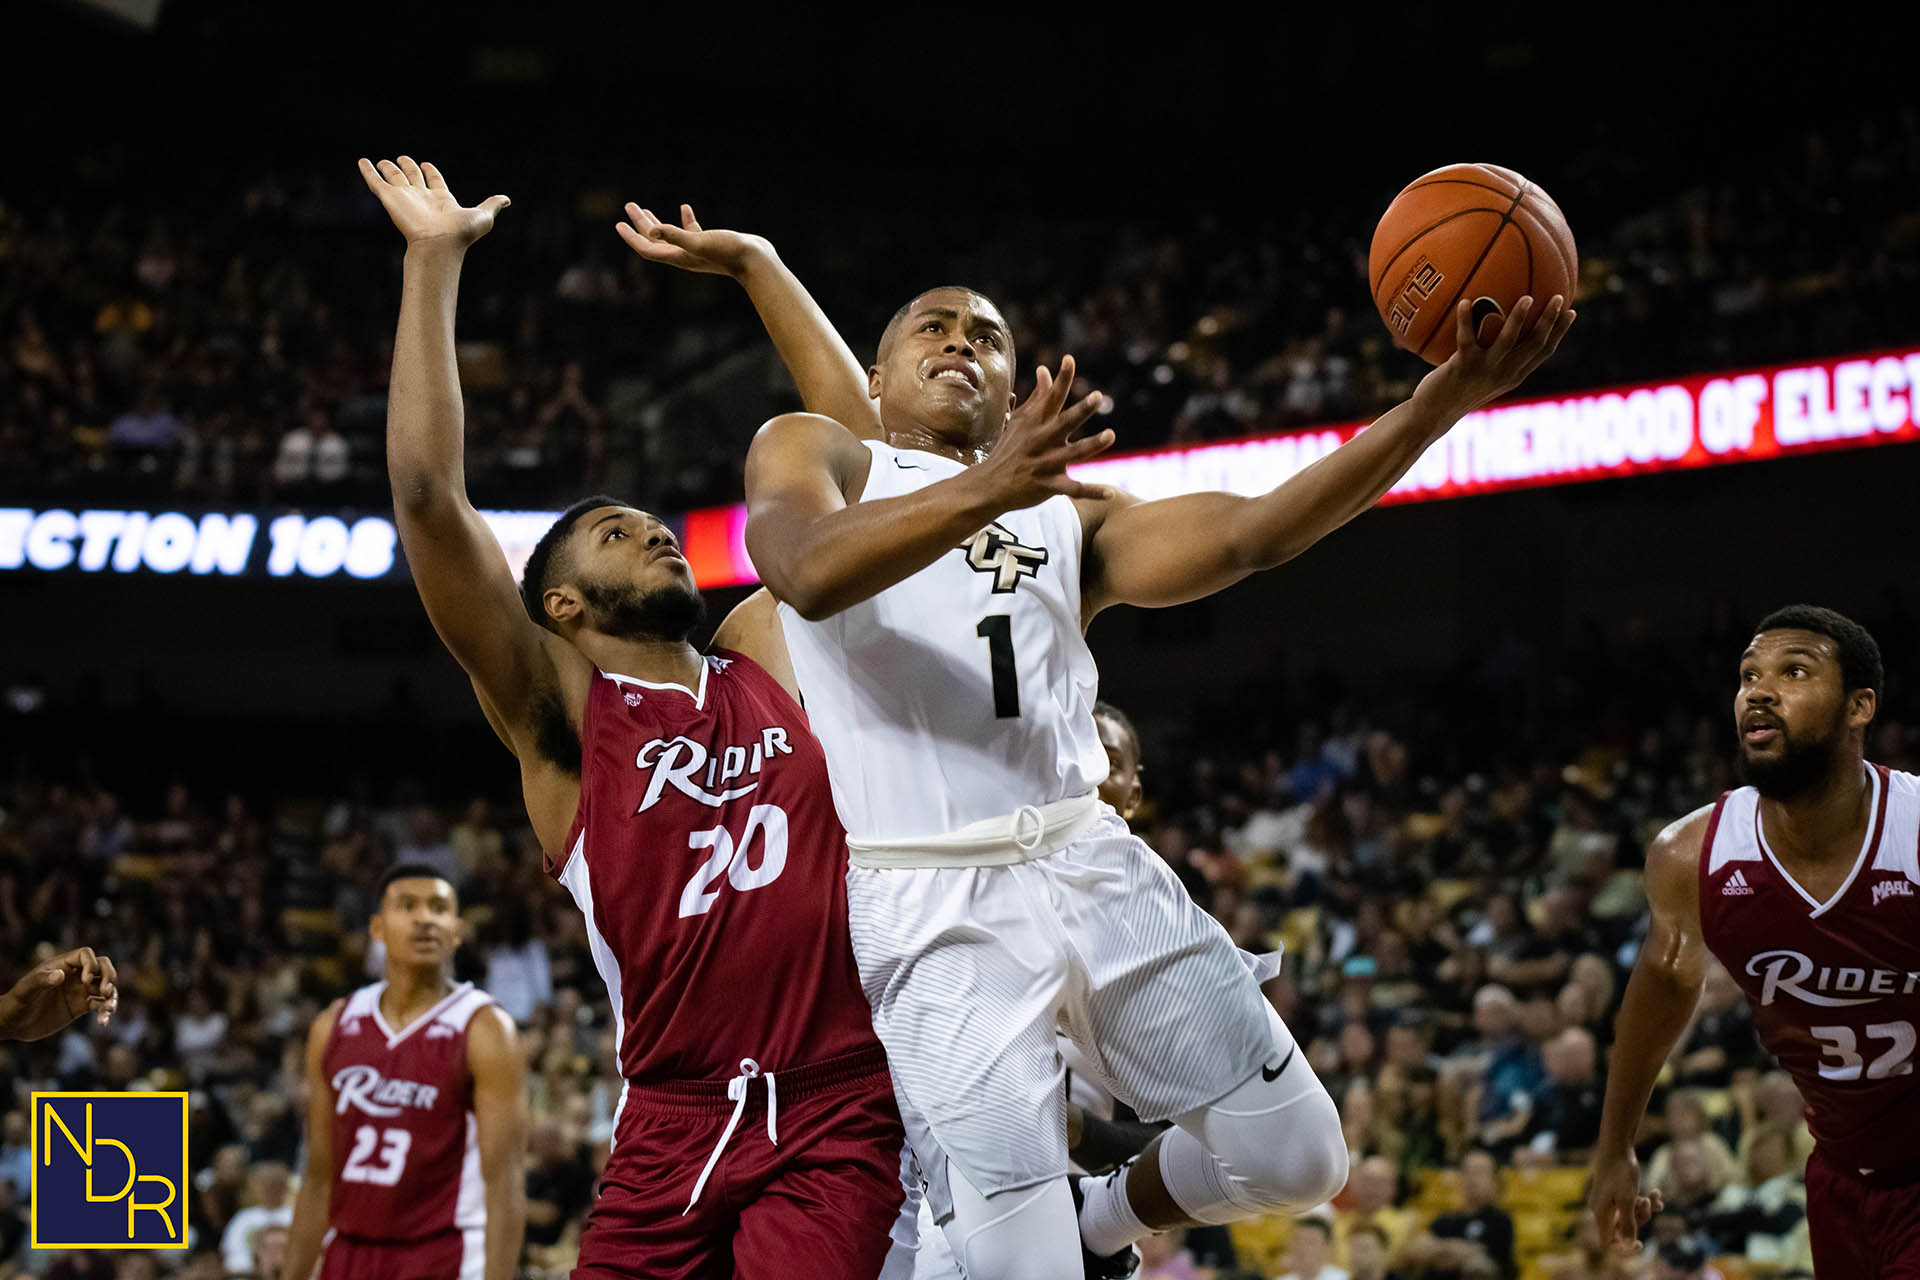 913251a8d9f UCF Knights guard B.J. Taylor goes up for a layup during an 84-70 win over  Rider University at CFE Arena on Tuesday, Nov. 6, 2018.